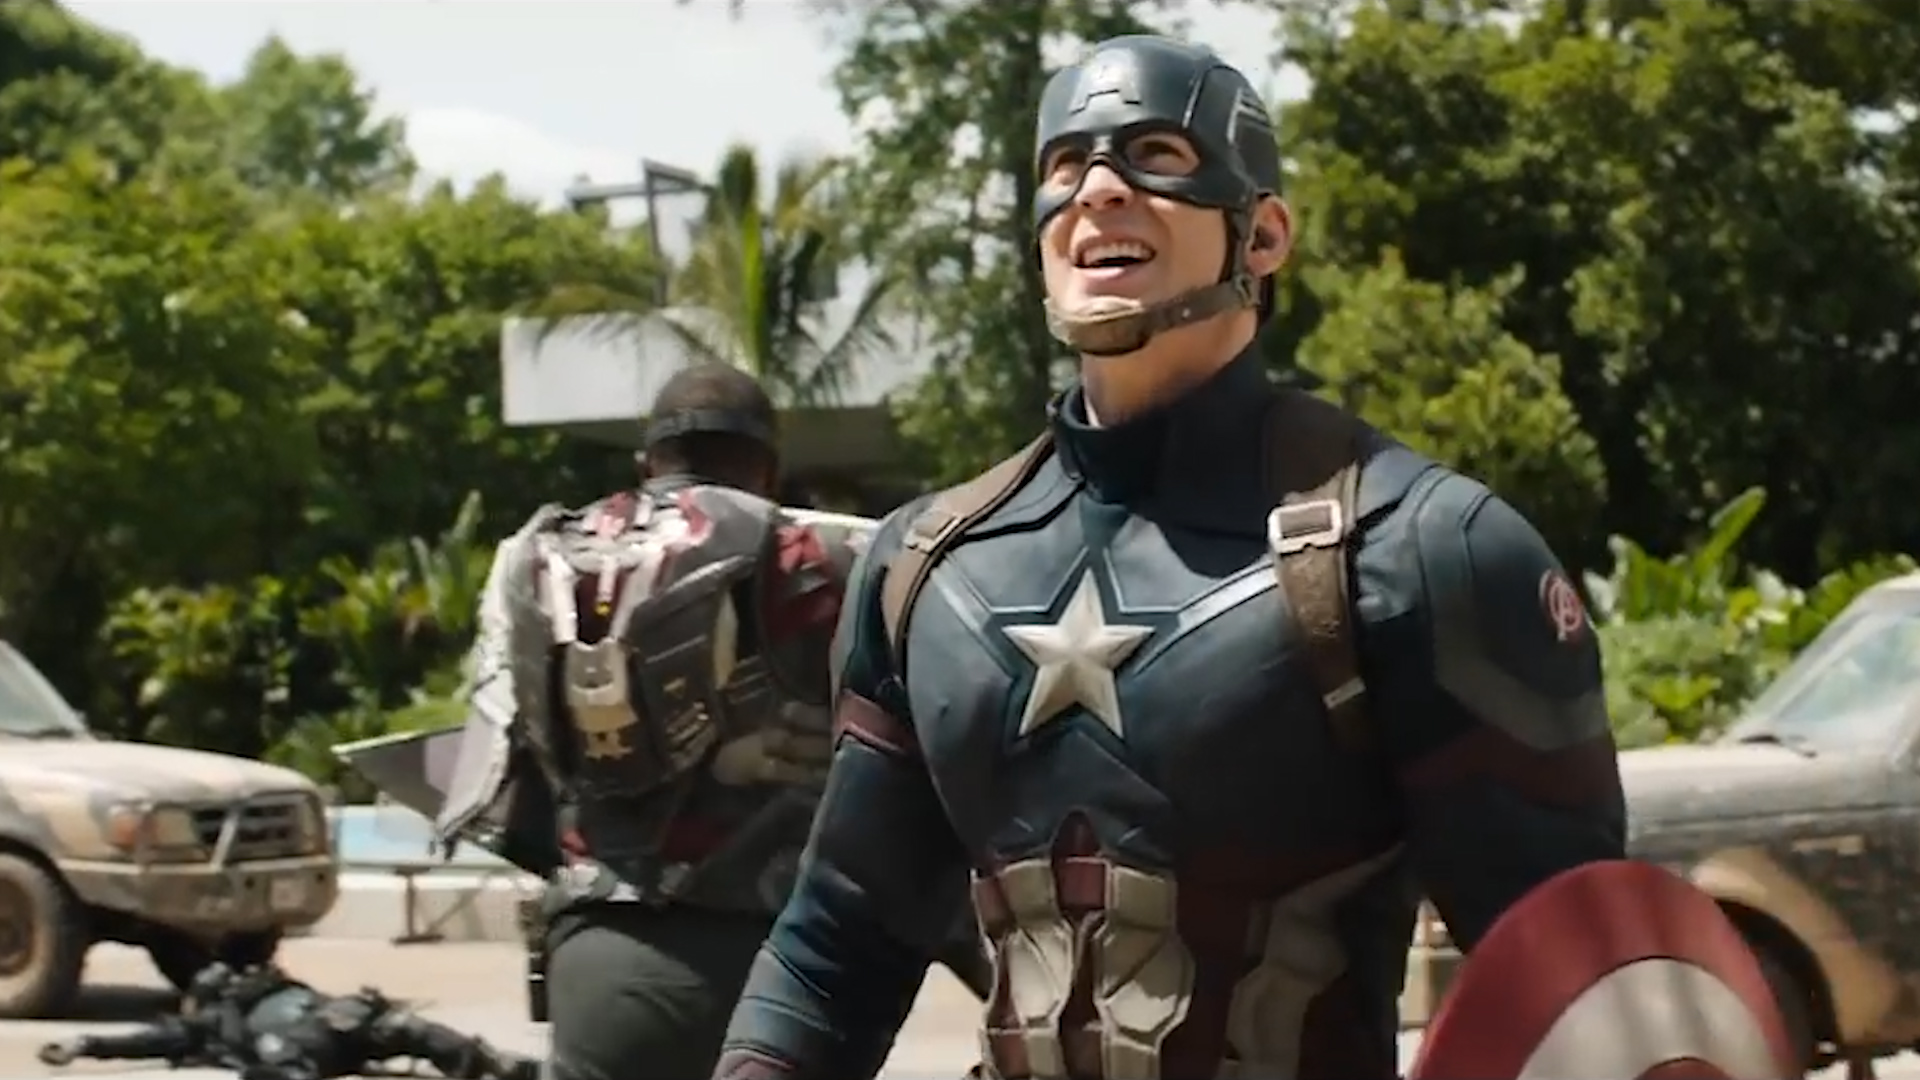 Video: What you need to see for 'Captain America: Civil War' to make any sense